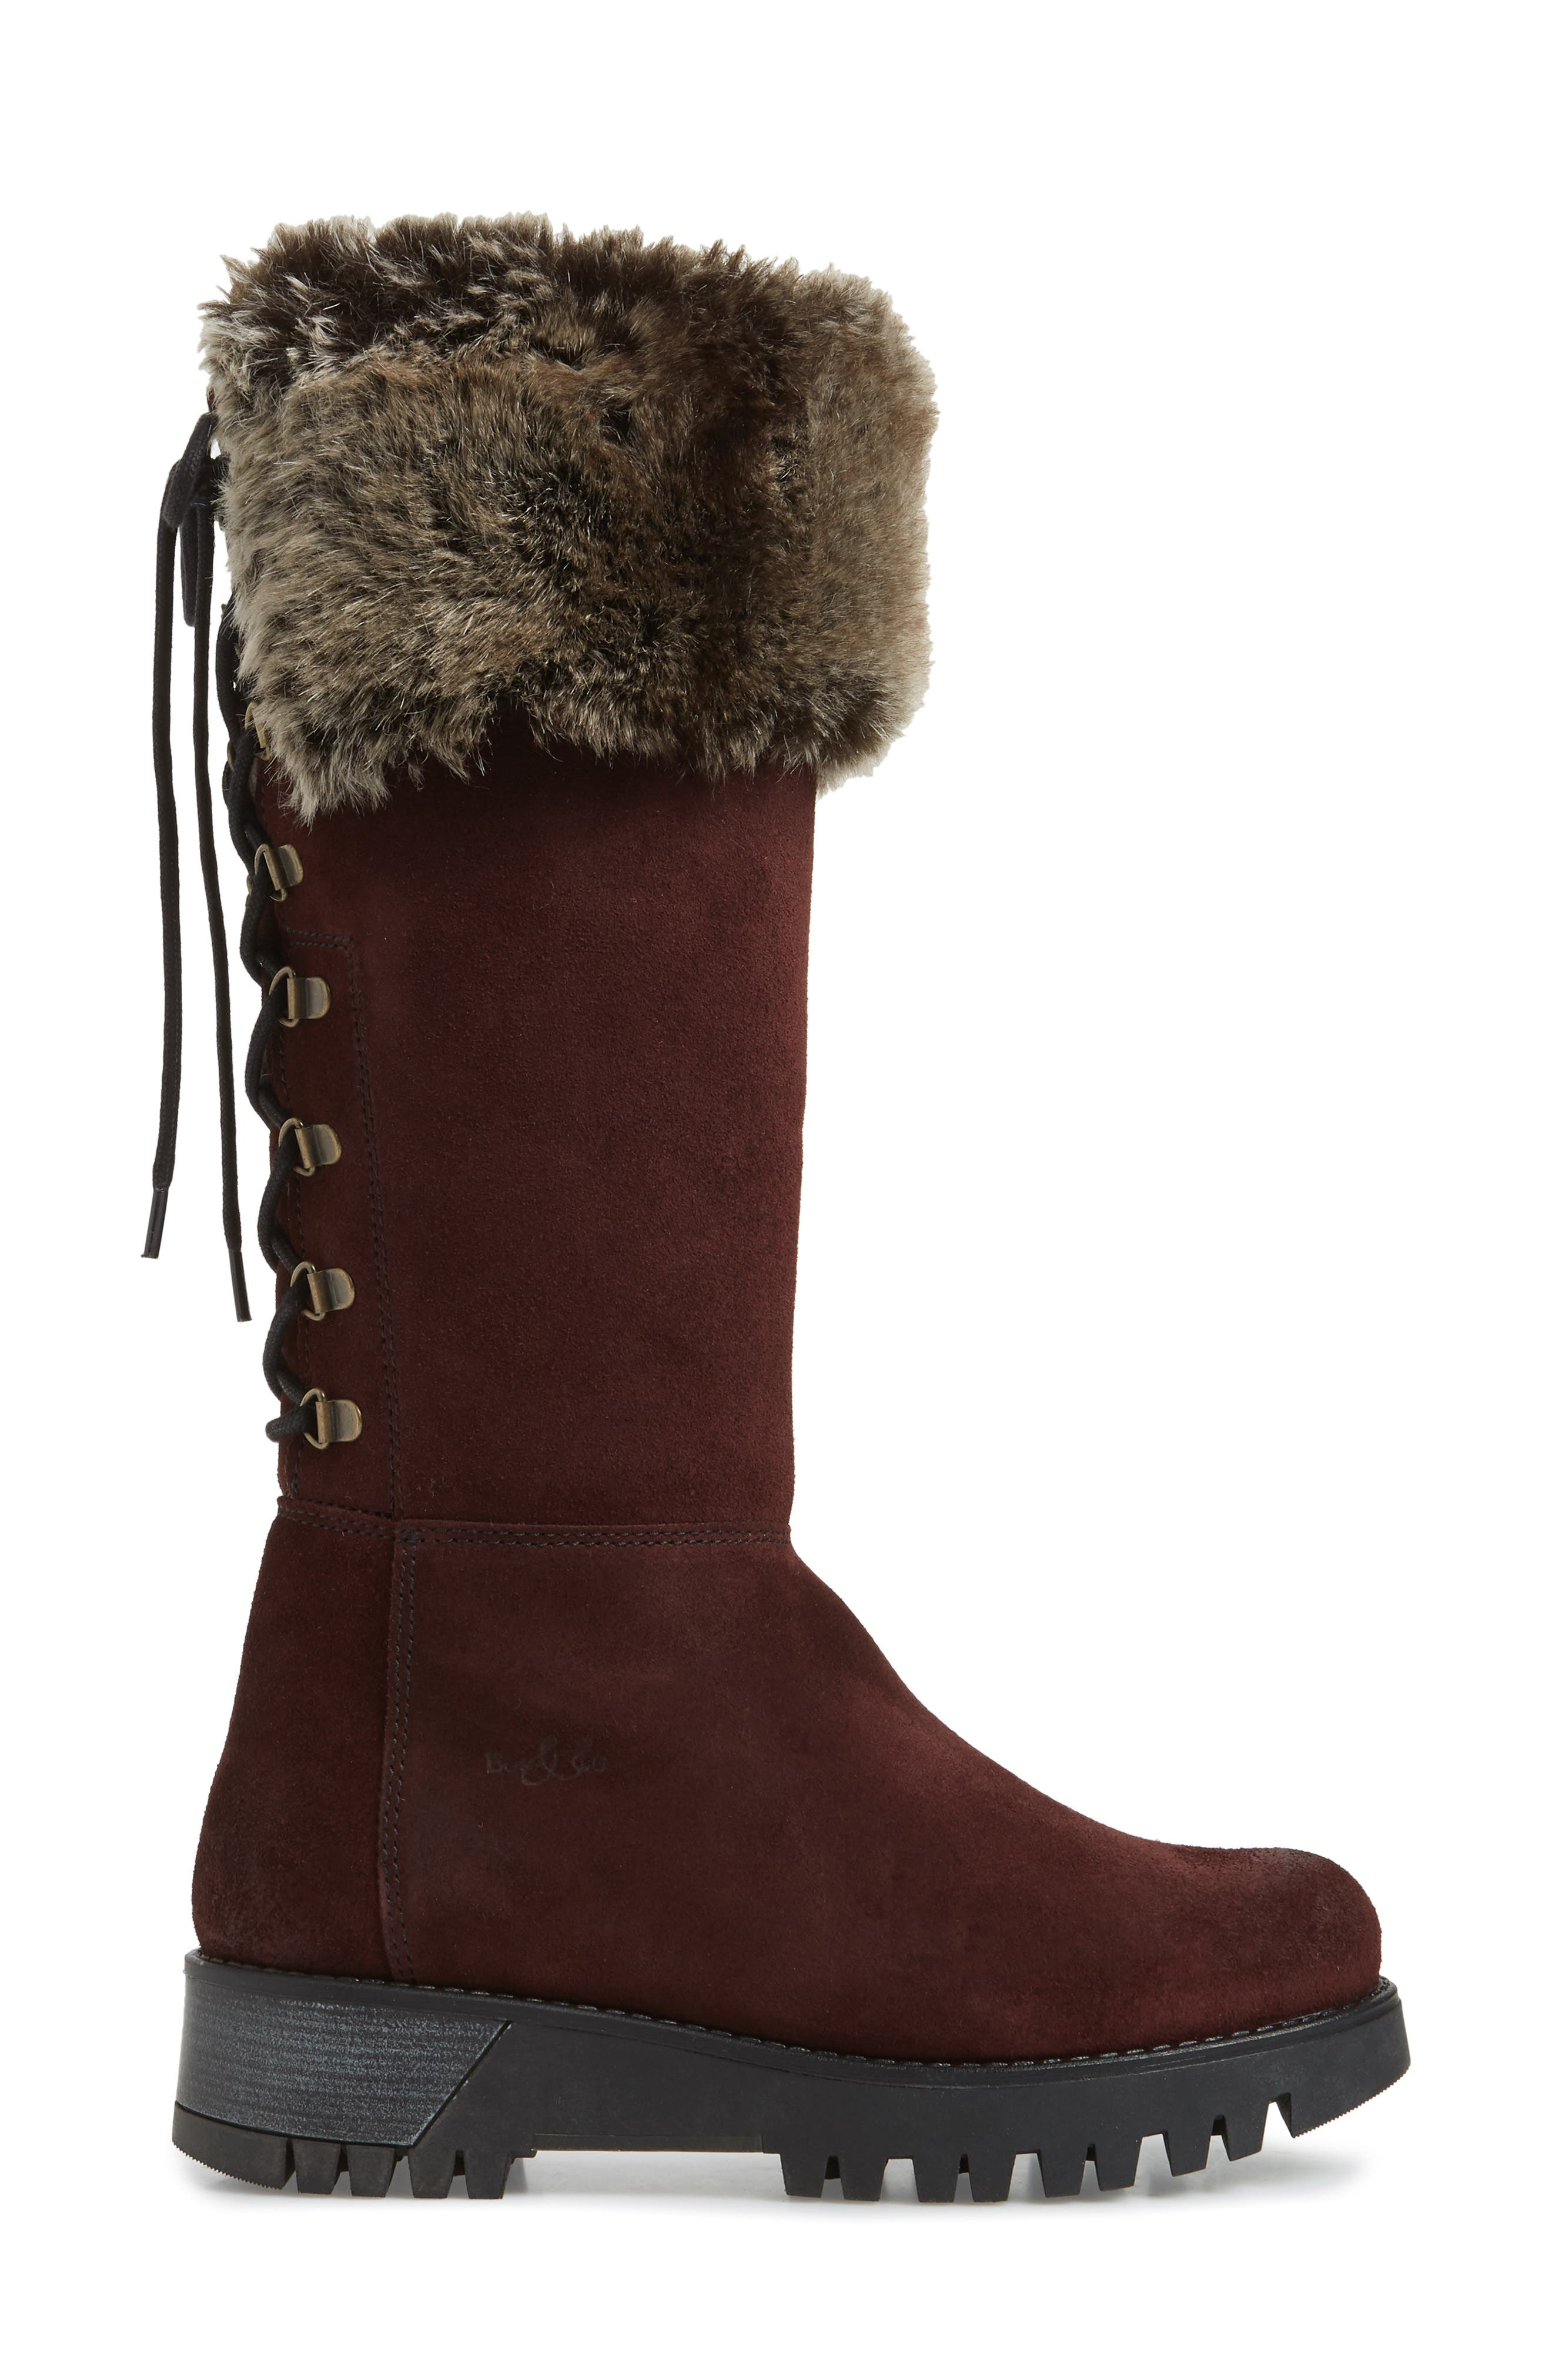 Graham Waterproof Winter Boot with Faux Fur Cuff,                             Alternate thumbnail 4, color,                             Wine Suede